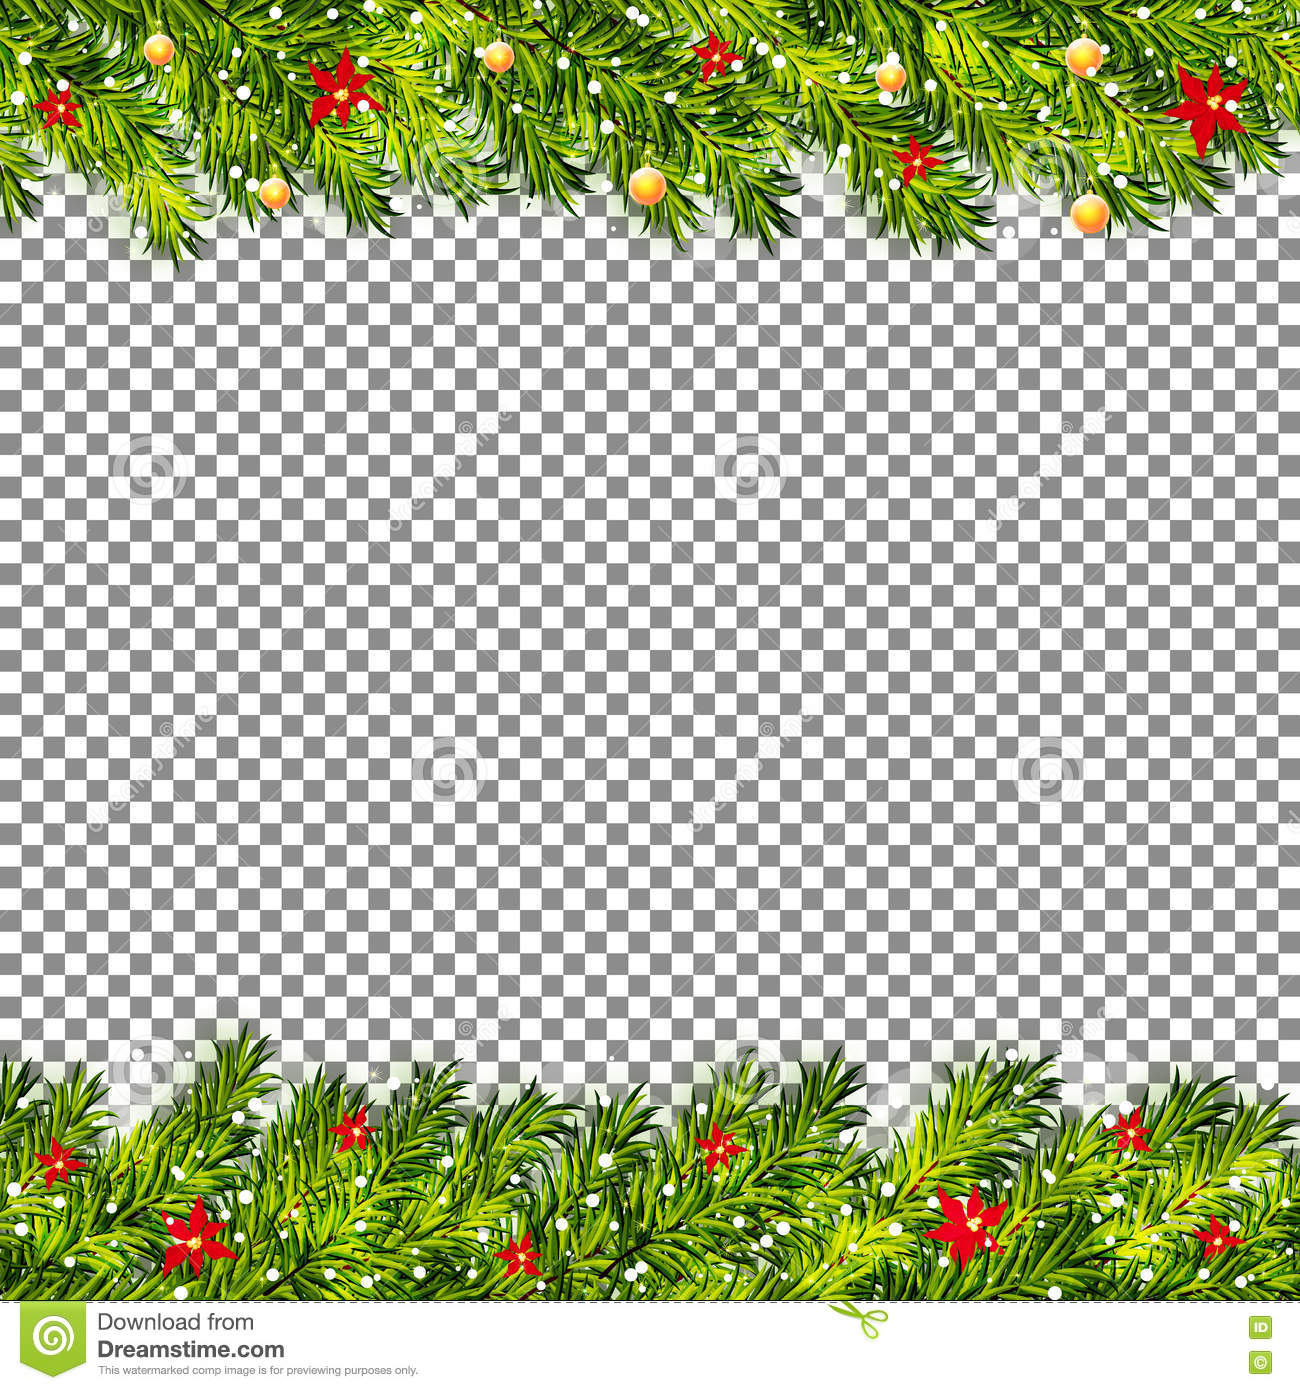 christmas tree branches on transparent background vector - Christmas Tree Transparent